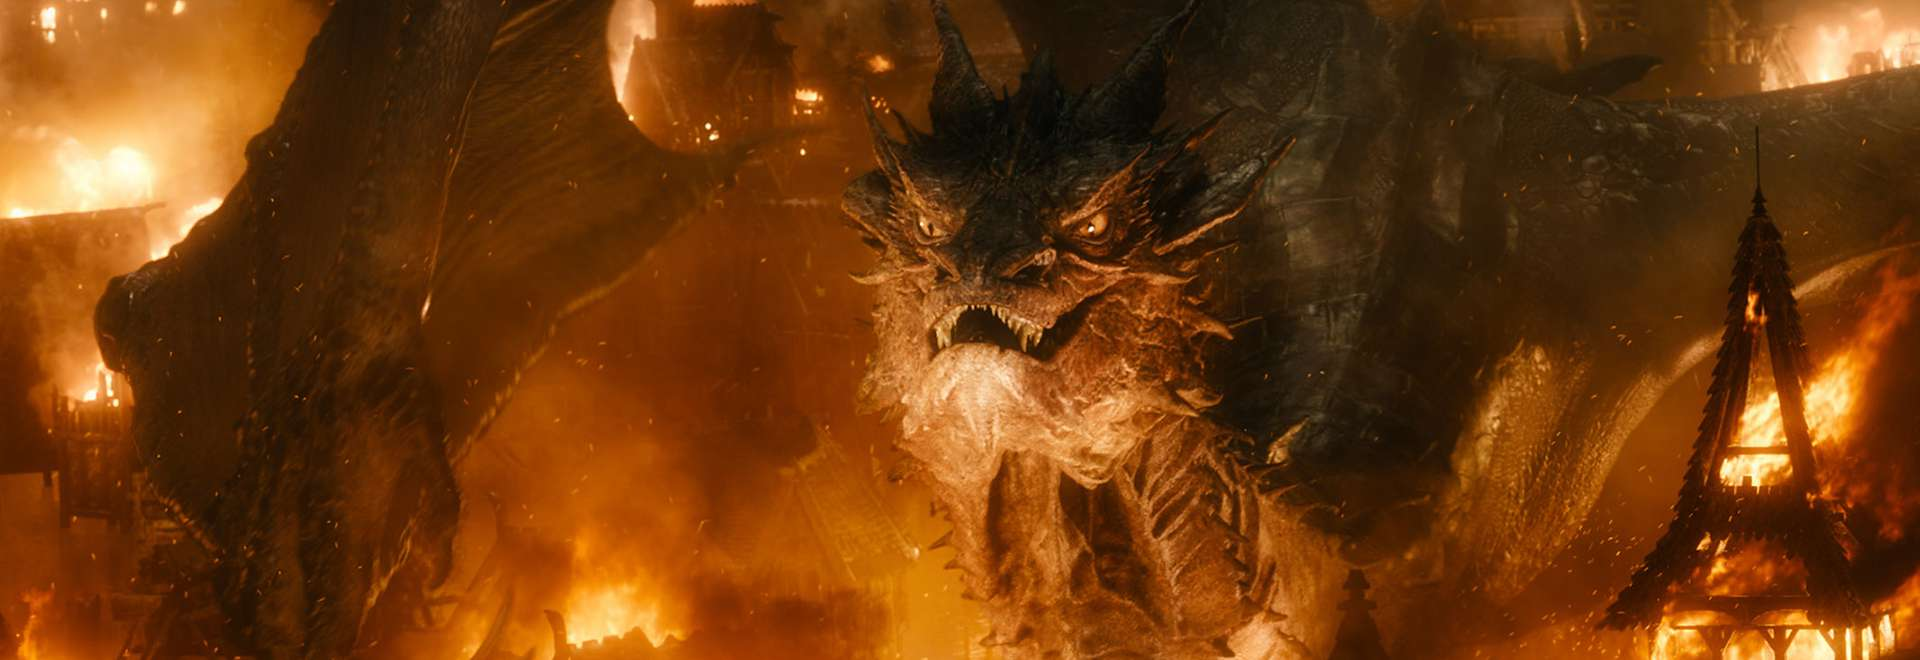 The Hobbit: The Battle of the Five Armies Feature Image